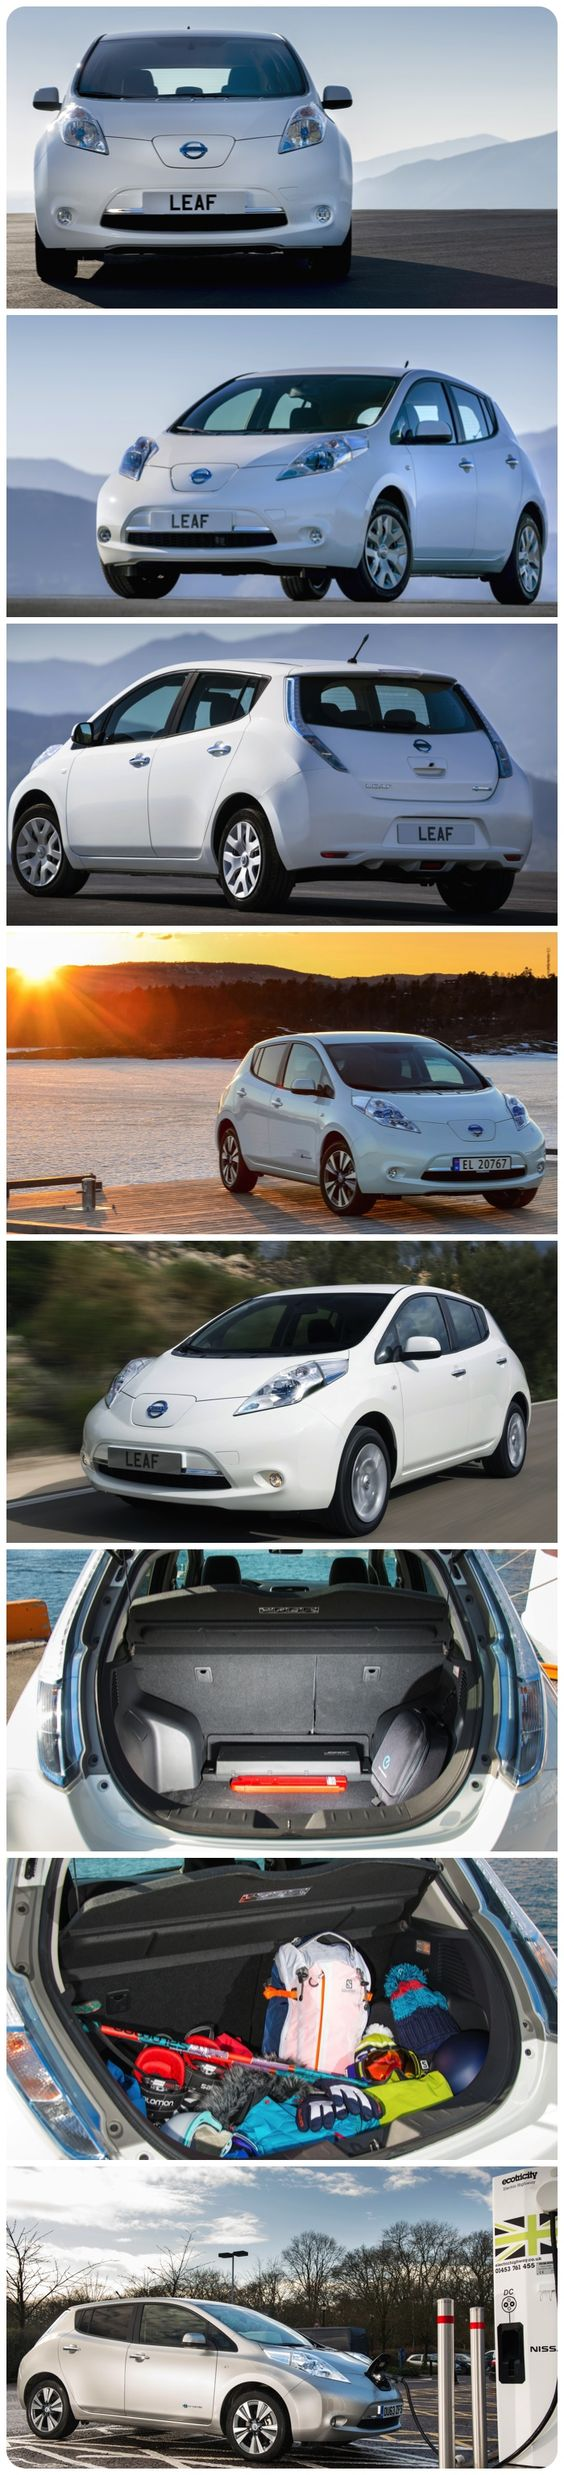 12 Months in the Nissan Leaf Tekna It begins to look as if my wife might not fully have come to terms with the all-electric Nissan Leaf we have been keeping at home on a year's loan.   #carreviews #leaf #nissan #electriccar